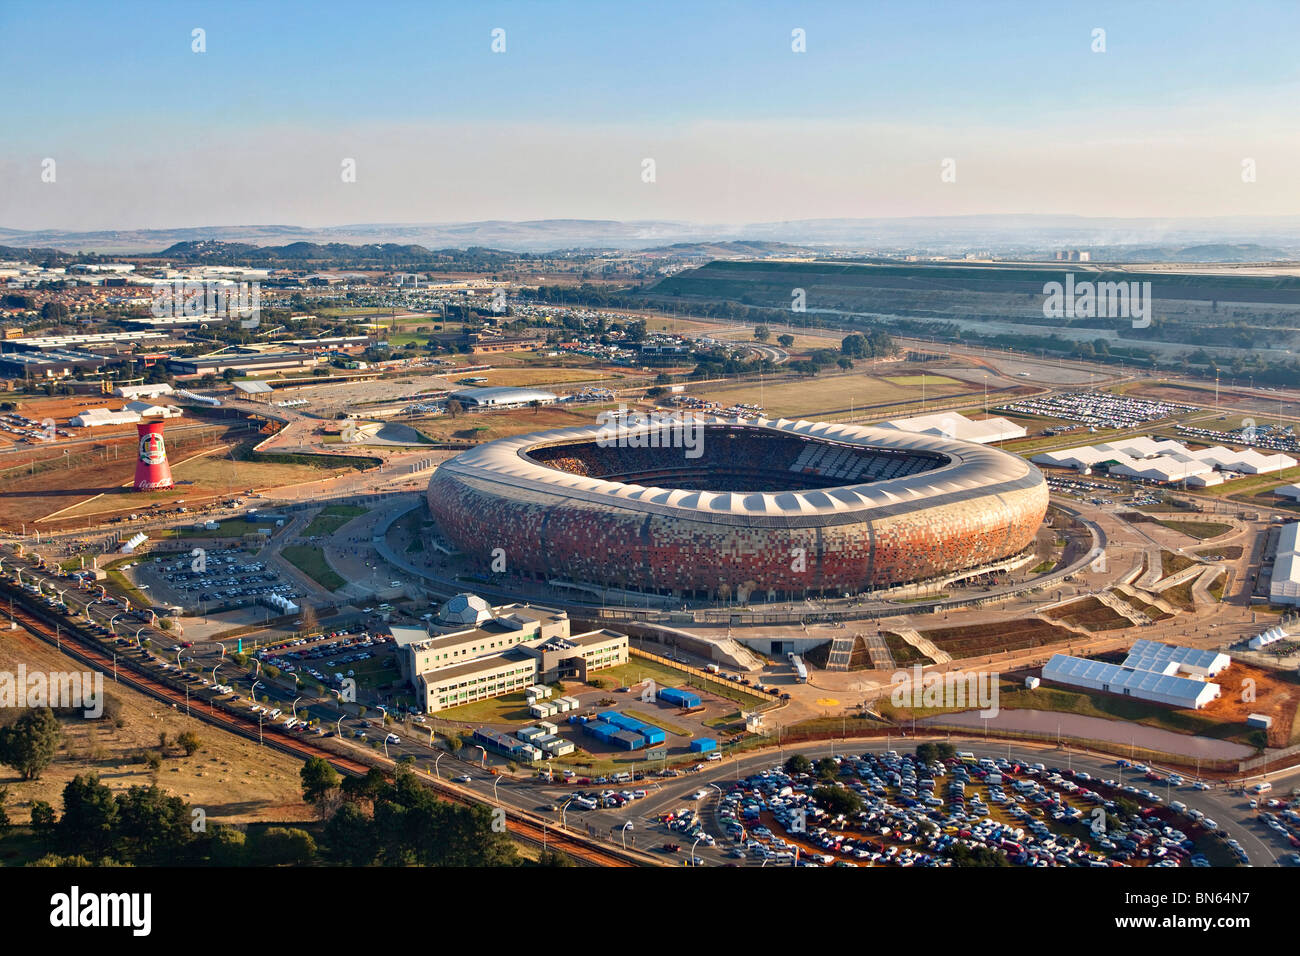 Aerial View of the FIFA 2010 Soccer City Stadium shaped like a calabash with the skyline of Johannesburg in the - Stock Image